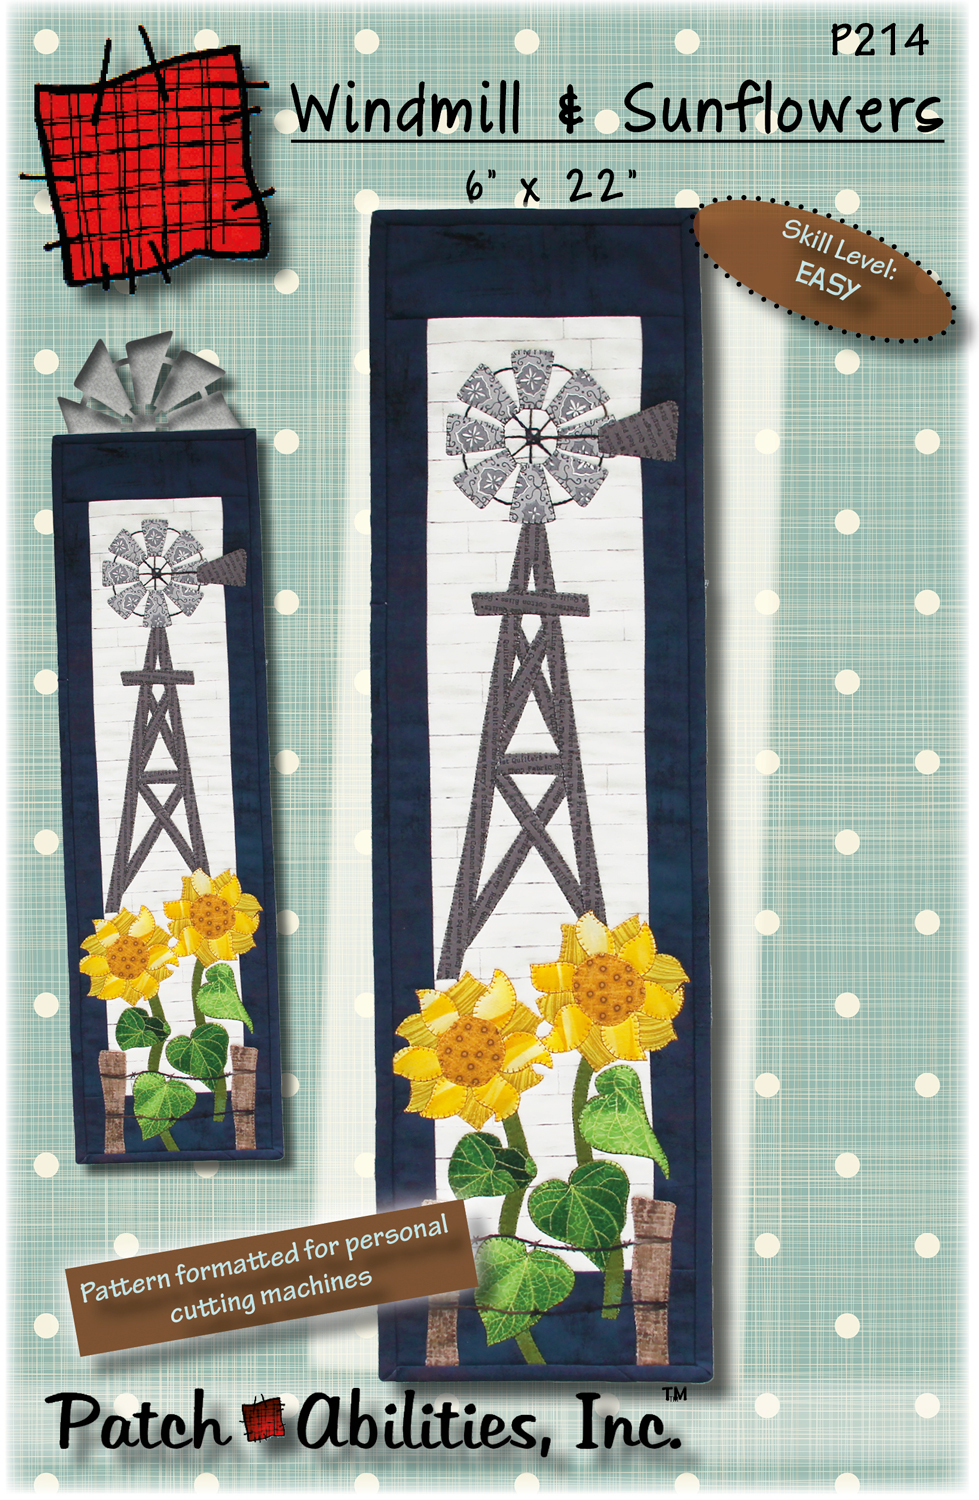 P214 Windmill and Sunflowers